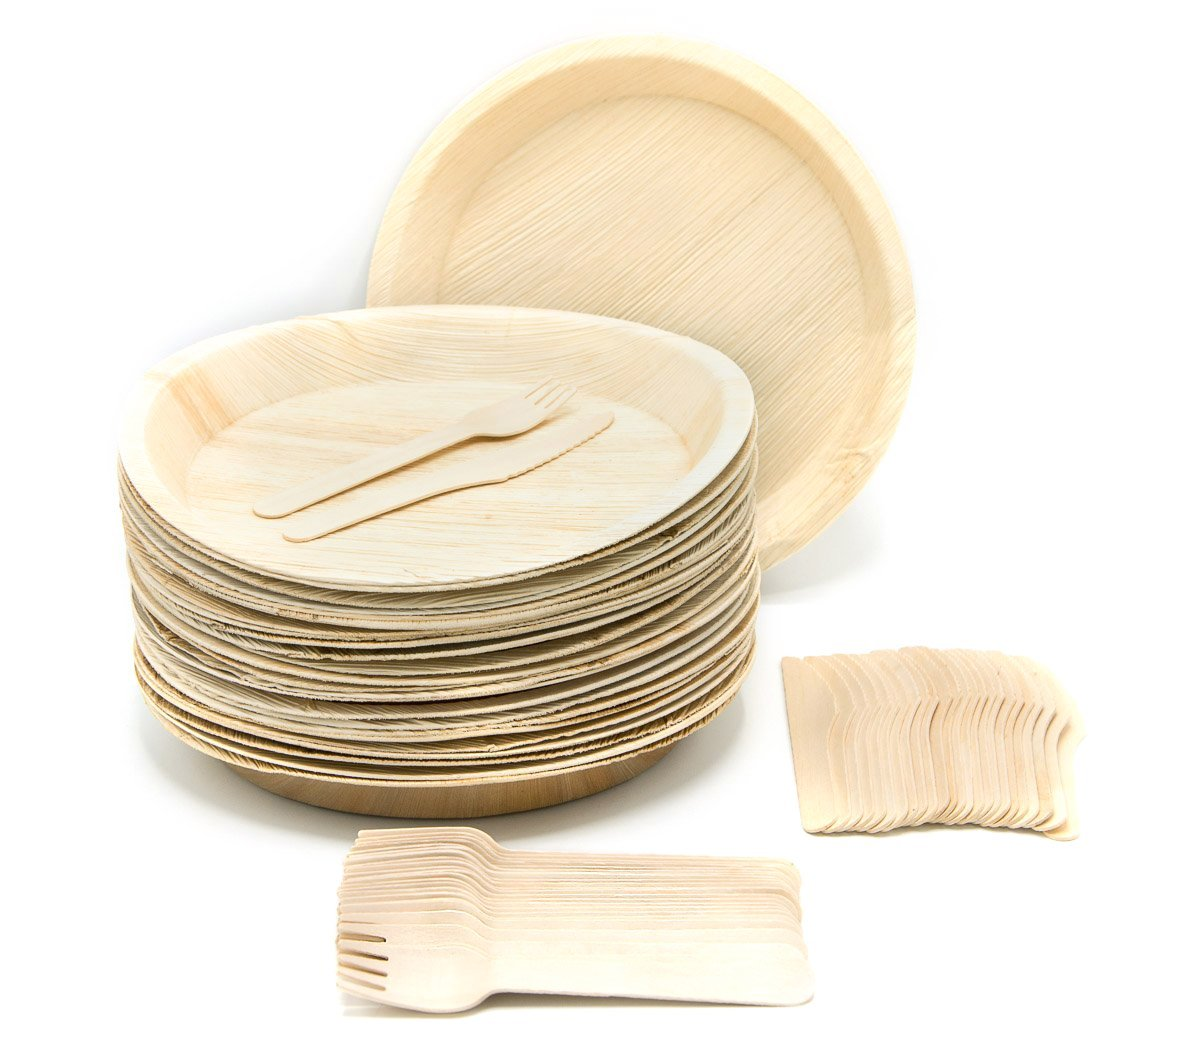 "Eco-Friendly Disposable Dinnerware Set of 75 Party Supplies: Large 10"" Round Palm Leaf Plates (25), Wooden Forks(25) & Knives (25) - Natural, Compostable"